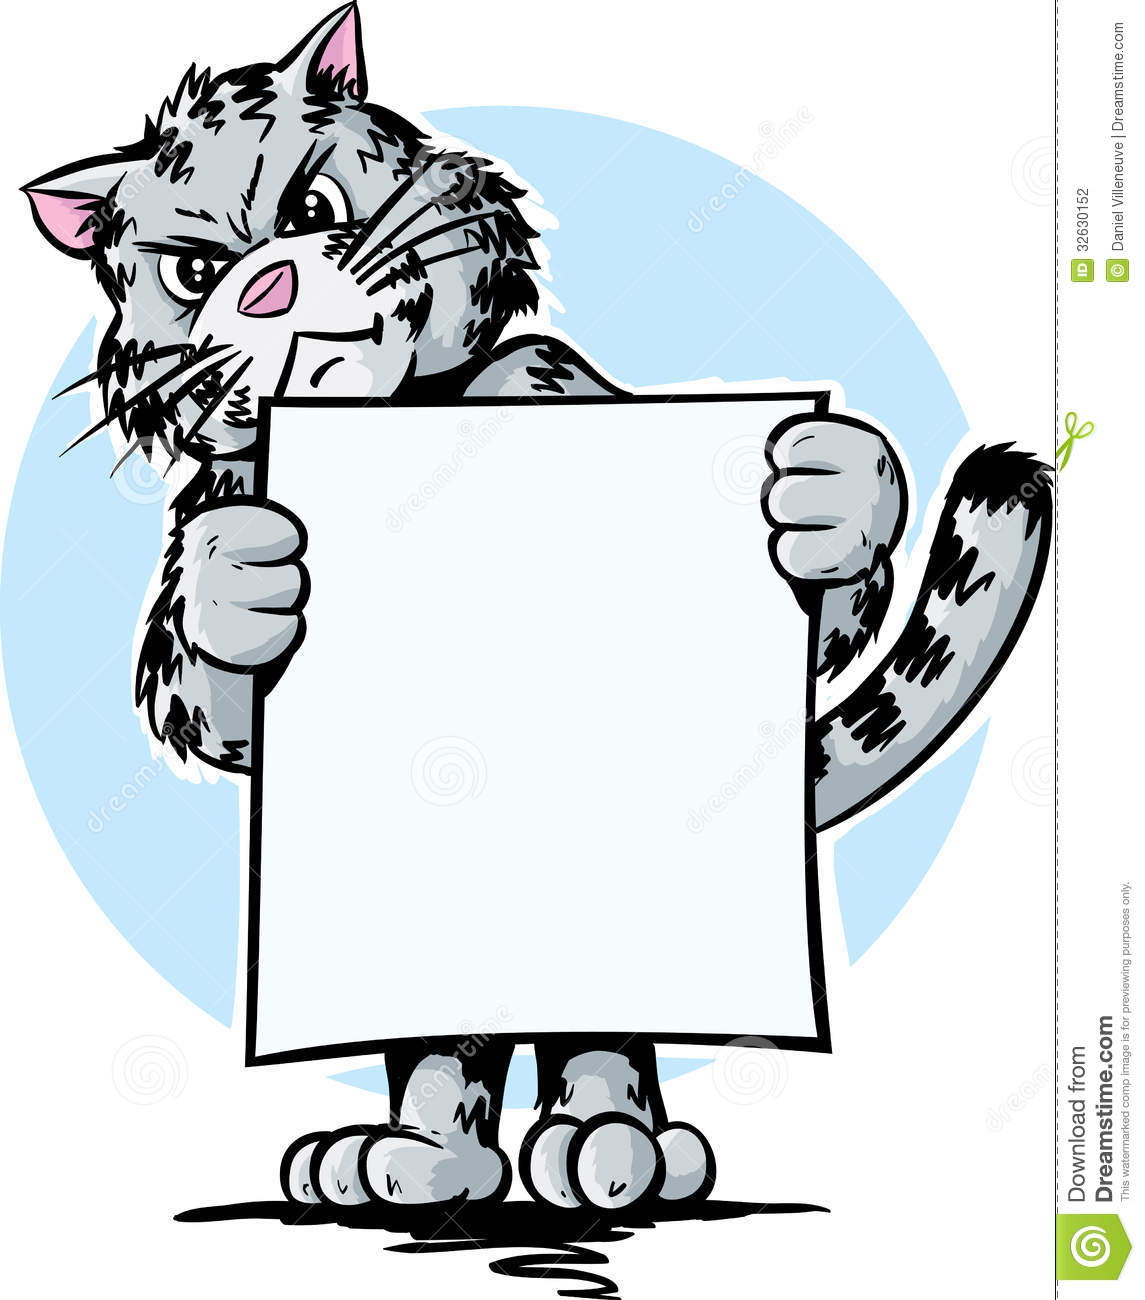 Angry cat stock vector. Illustration of sign, cartoon ...